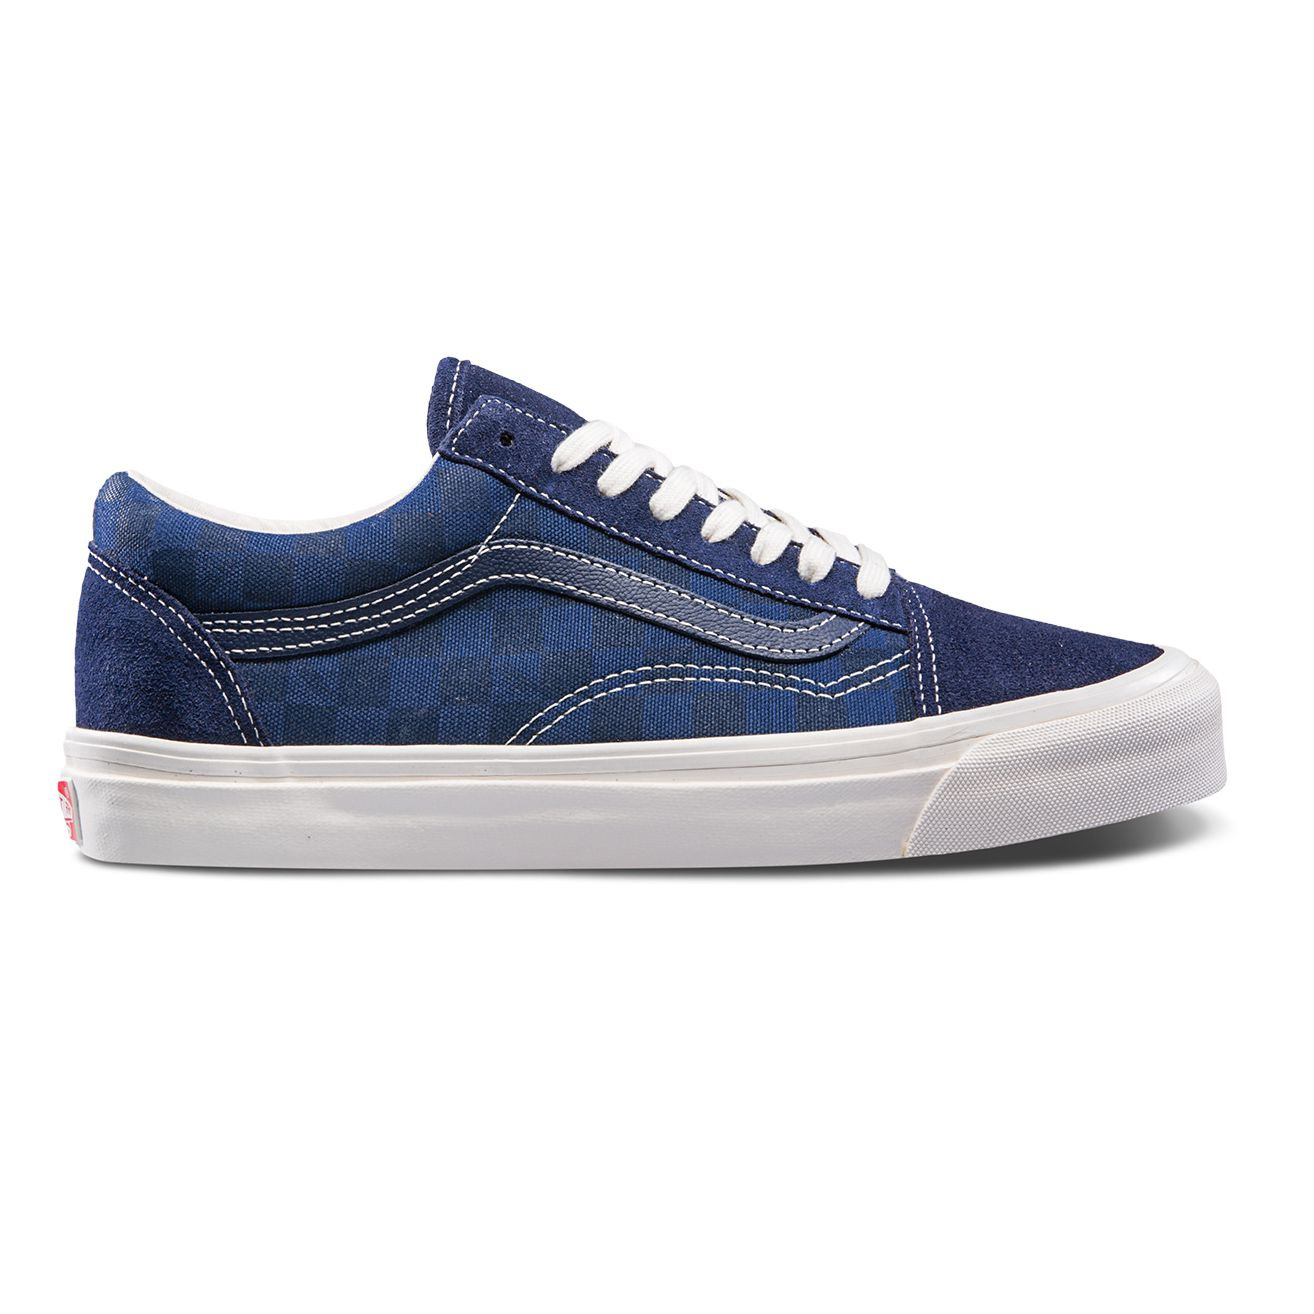 VANS VAULT OG OLD SKOOL LX (SUEDE/CANVAS) CHECKERBOARD/MAJOLICA